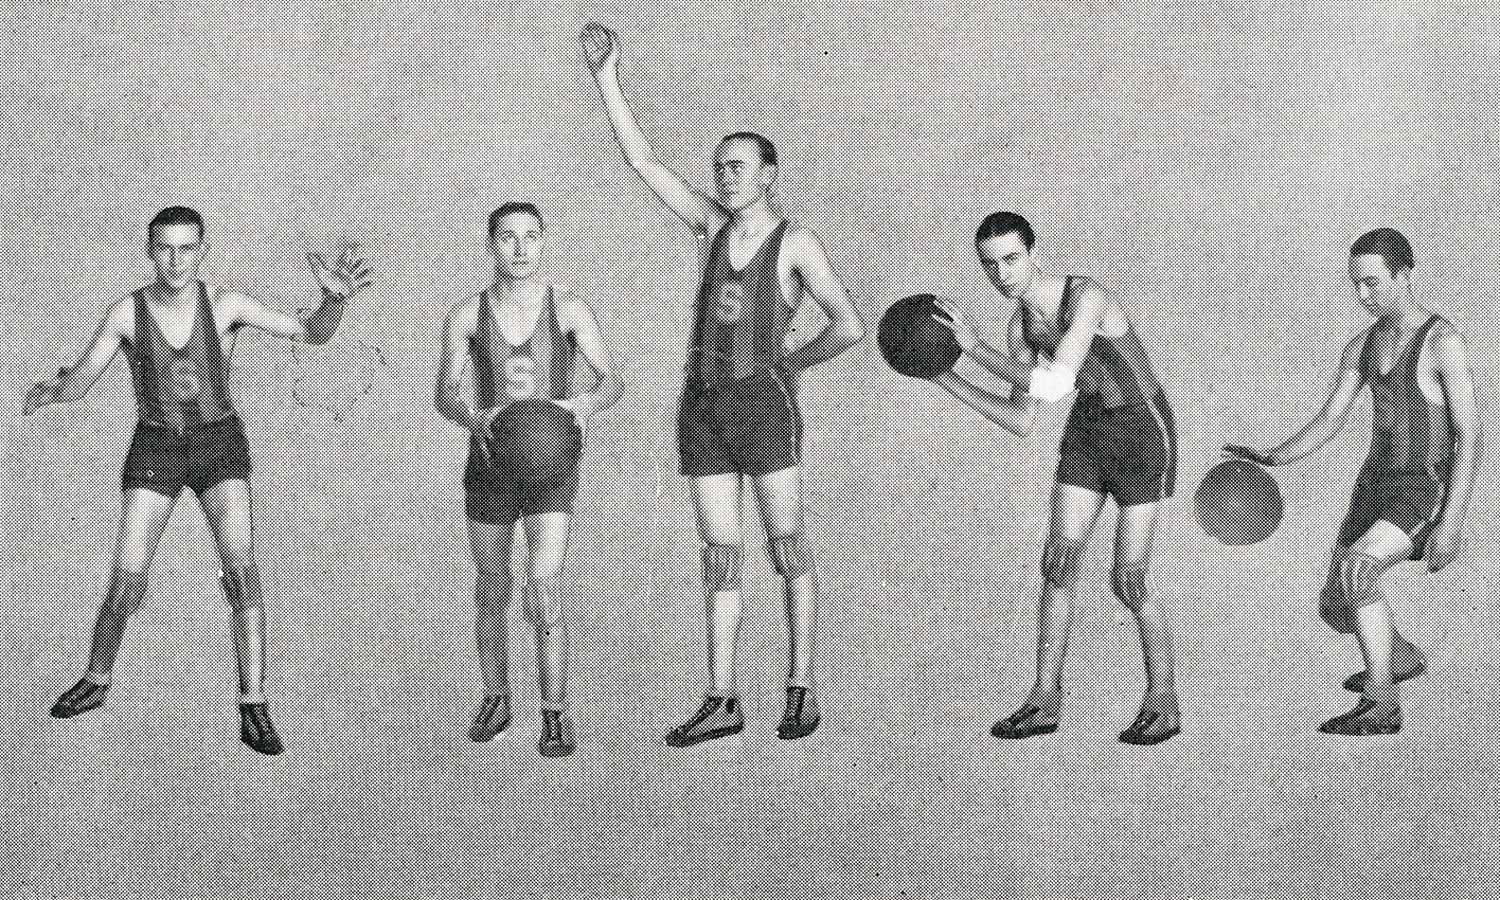 The Shawnee High School basketball team, 1925. My grandfather is second from the right.